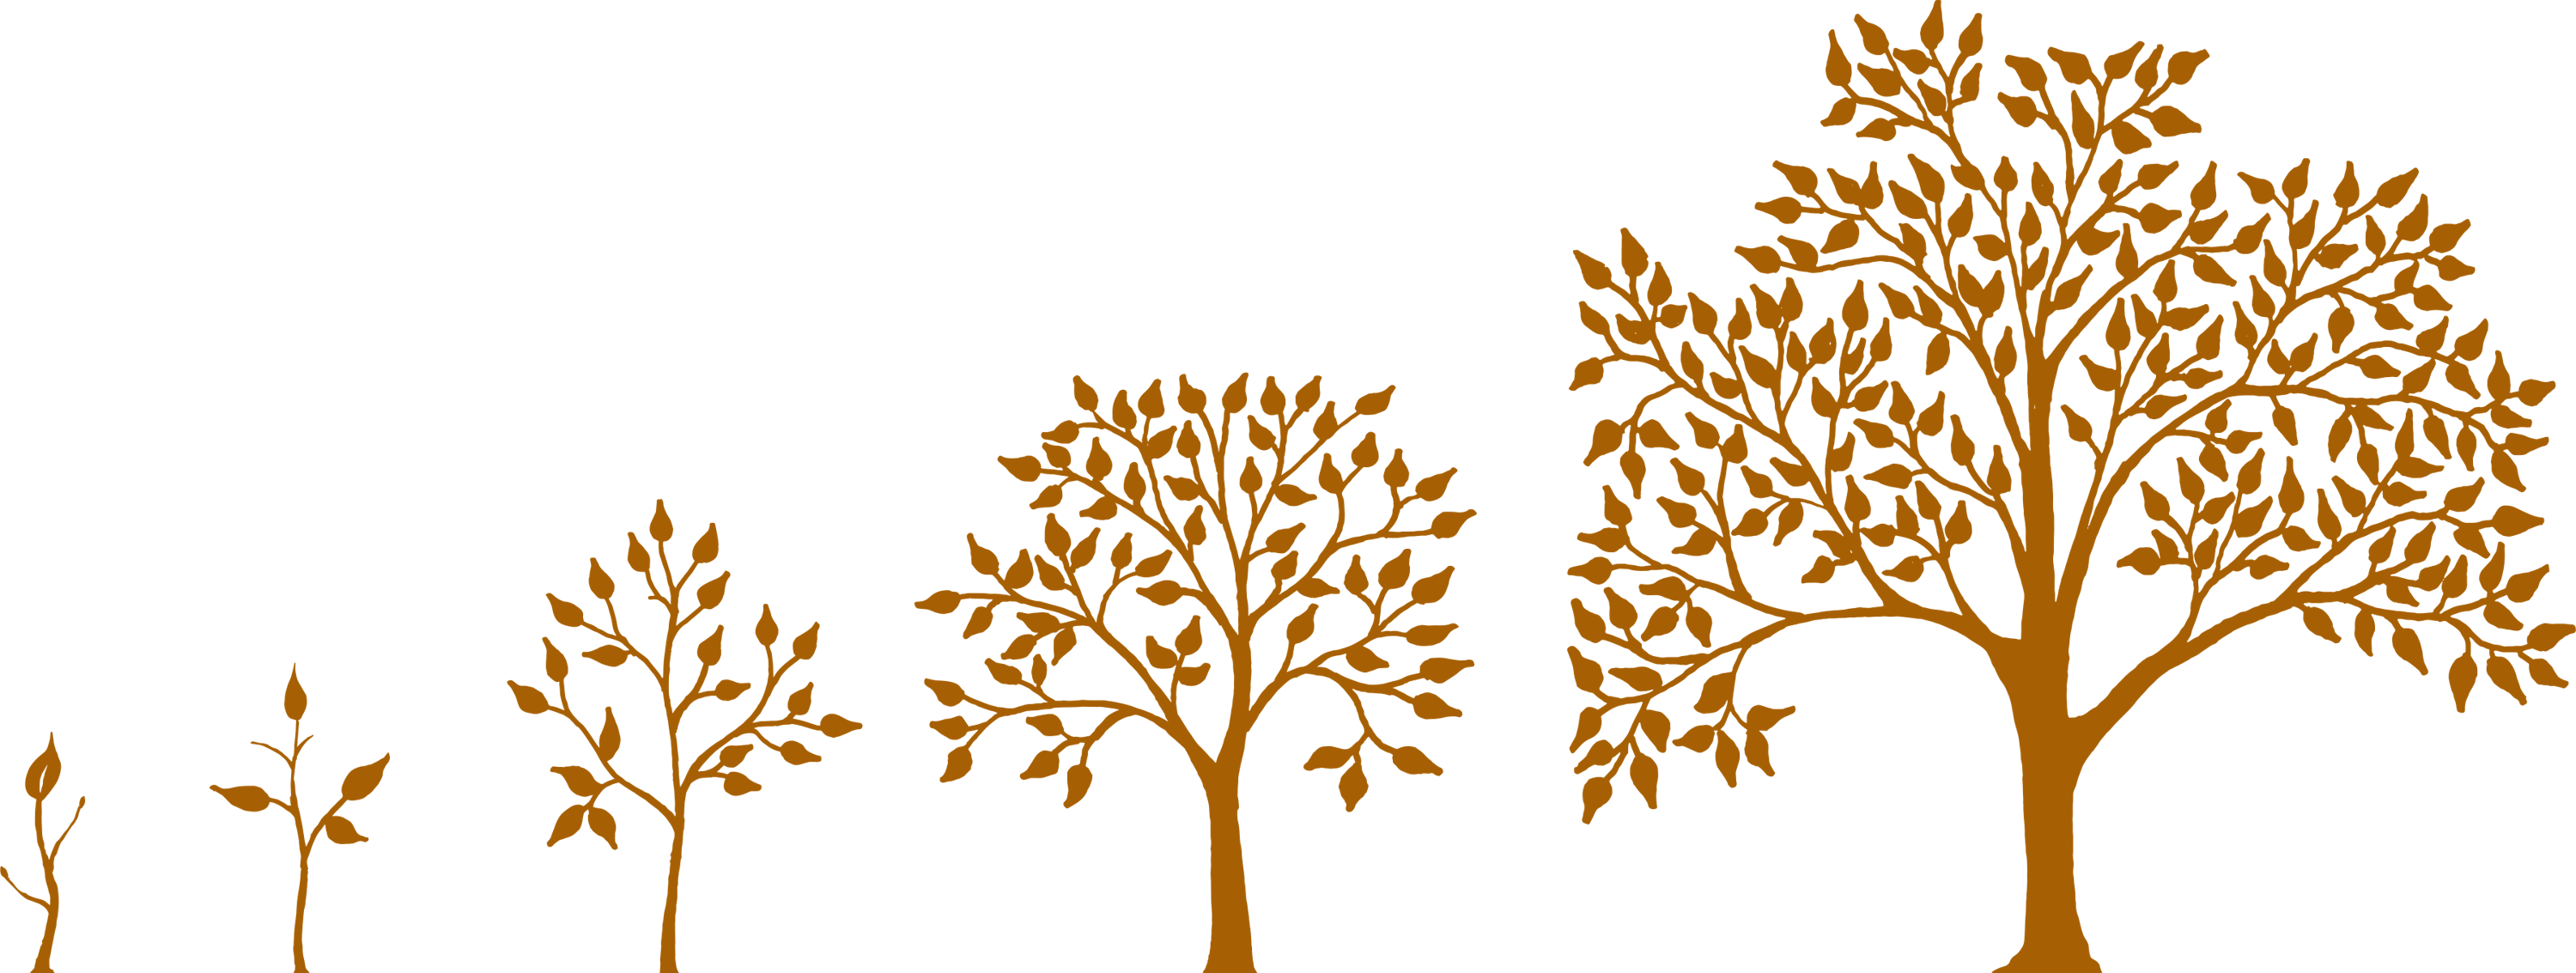 graphic of 5 trees growing from seedling to large tree